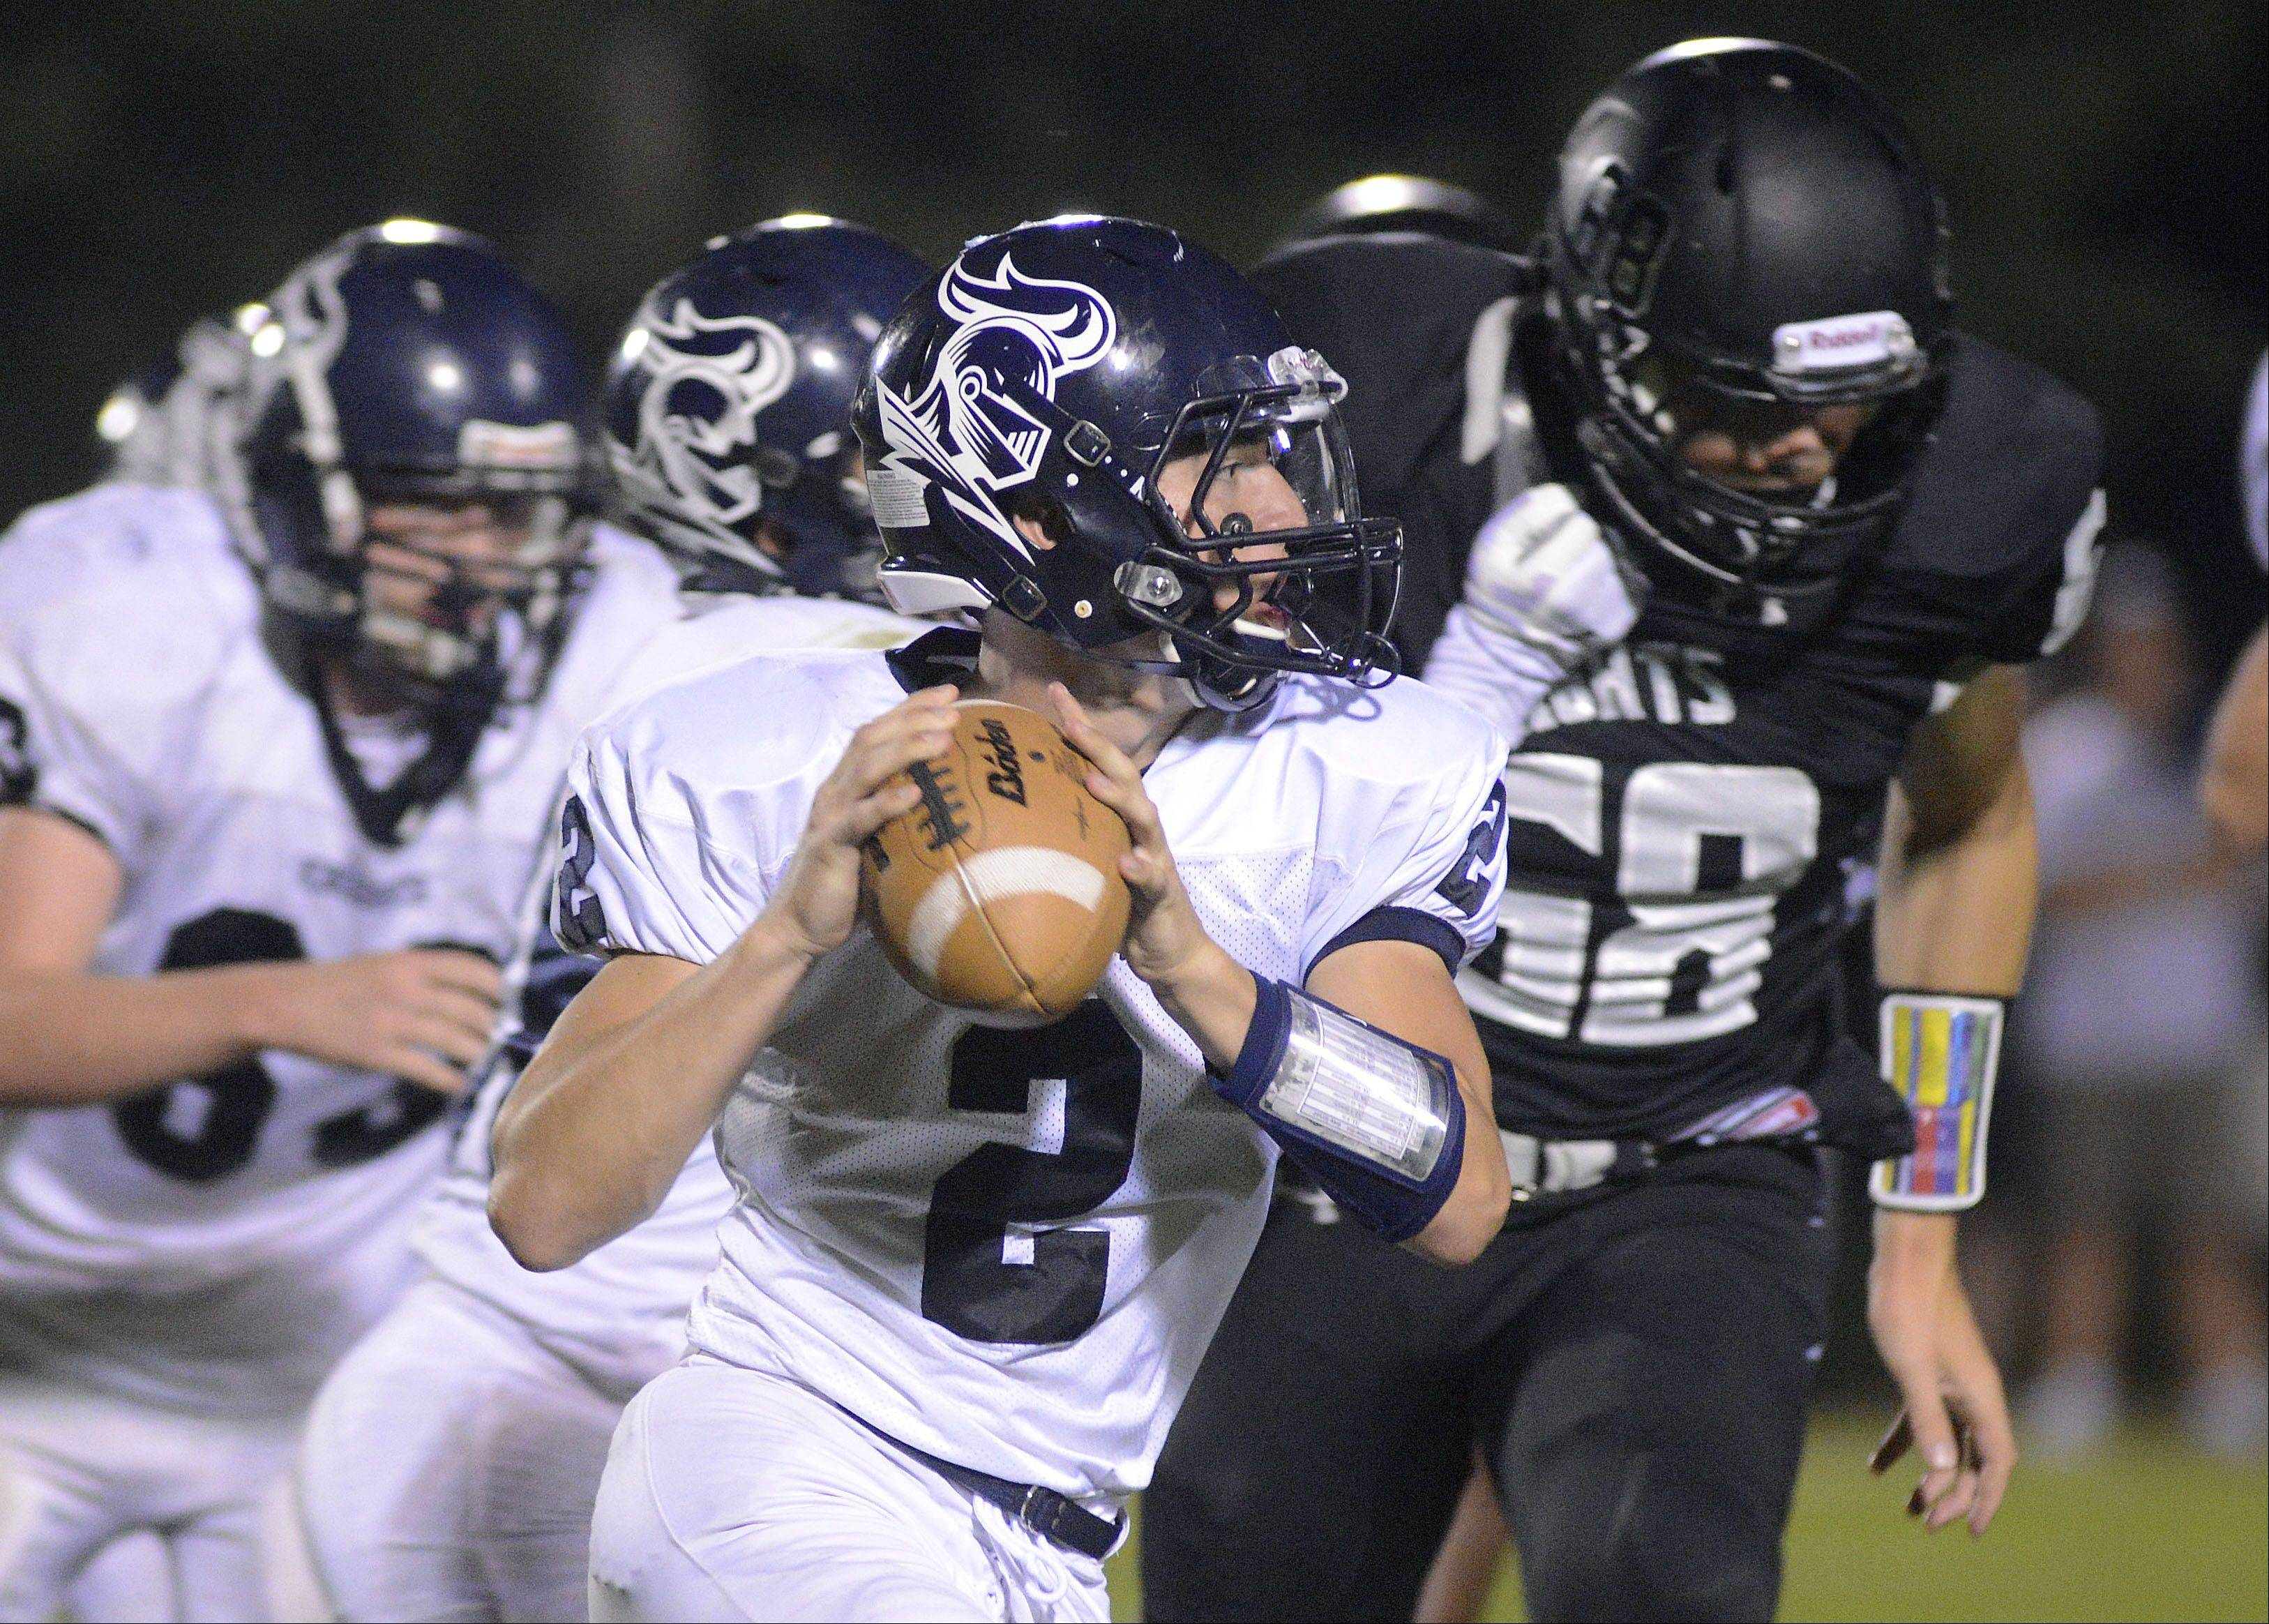 Kaneland overpowers IC Catholic Prep